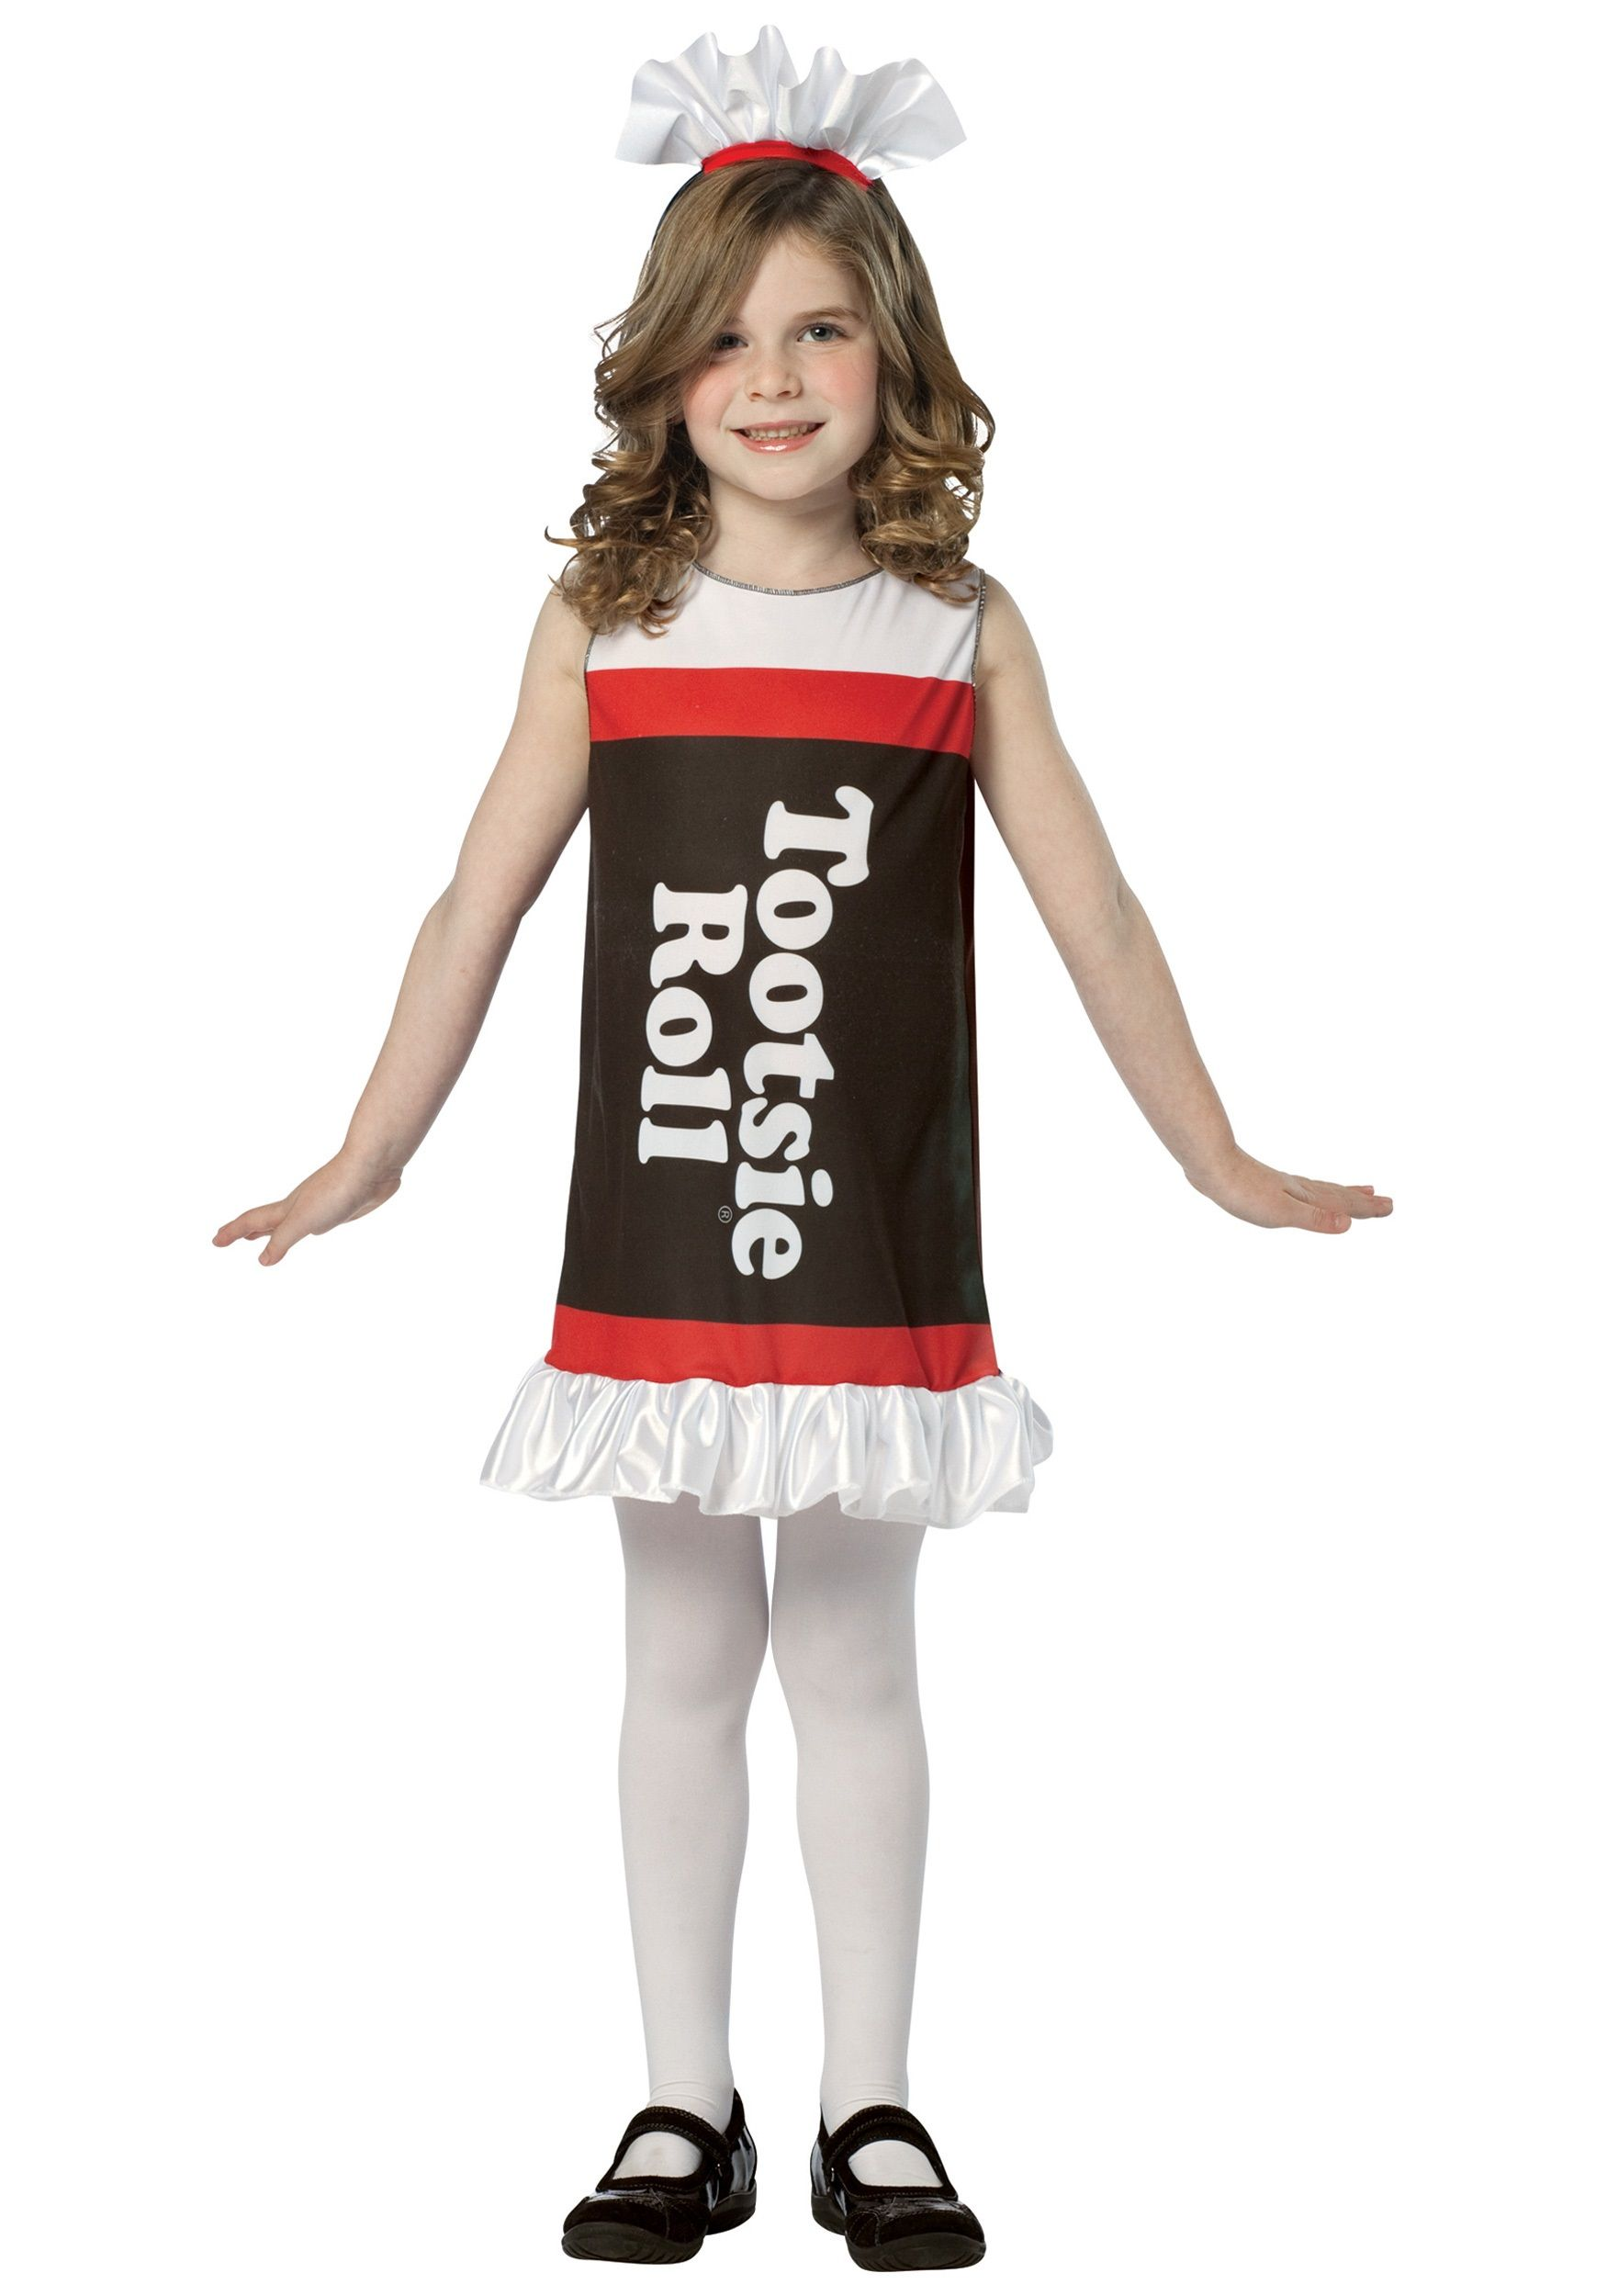 candy costume ideas | costume ideas > funny costumes > kids funny